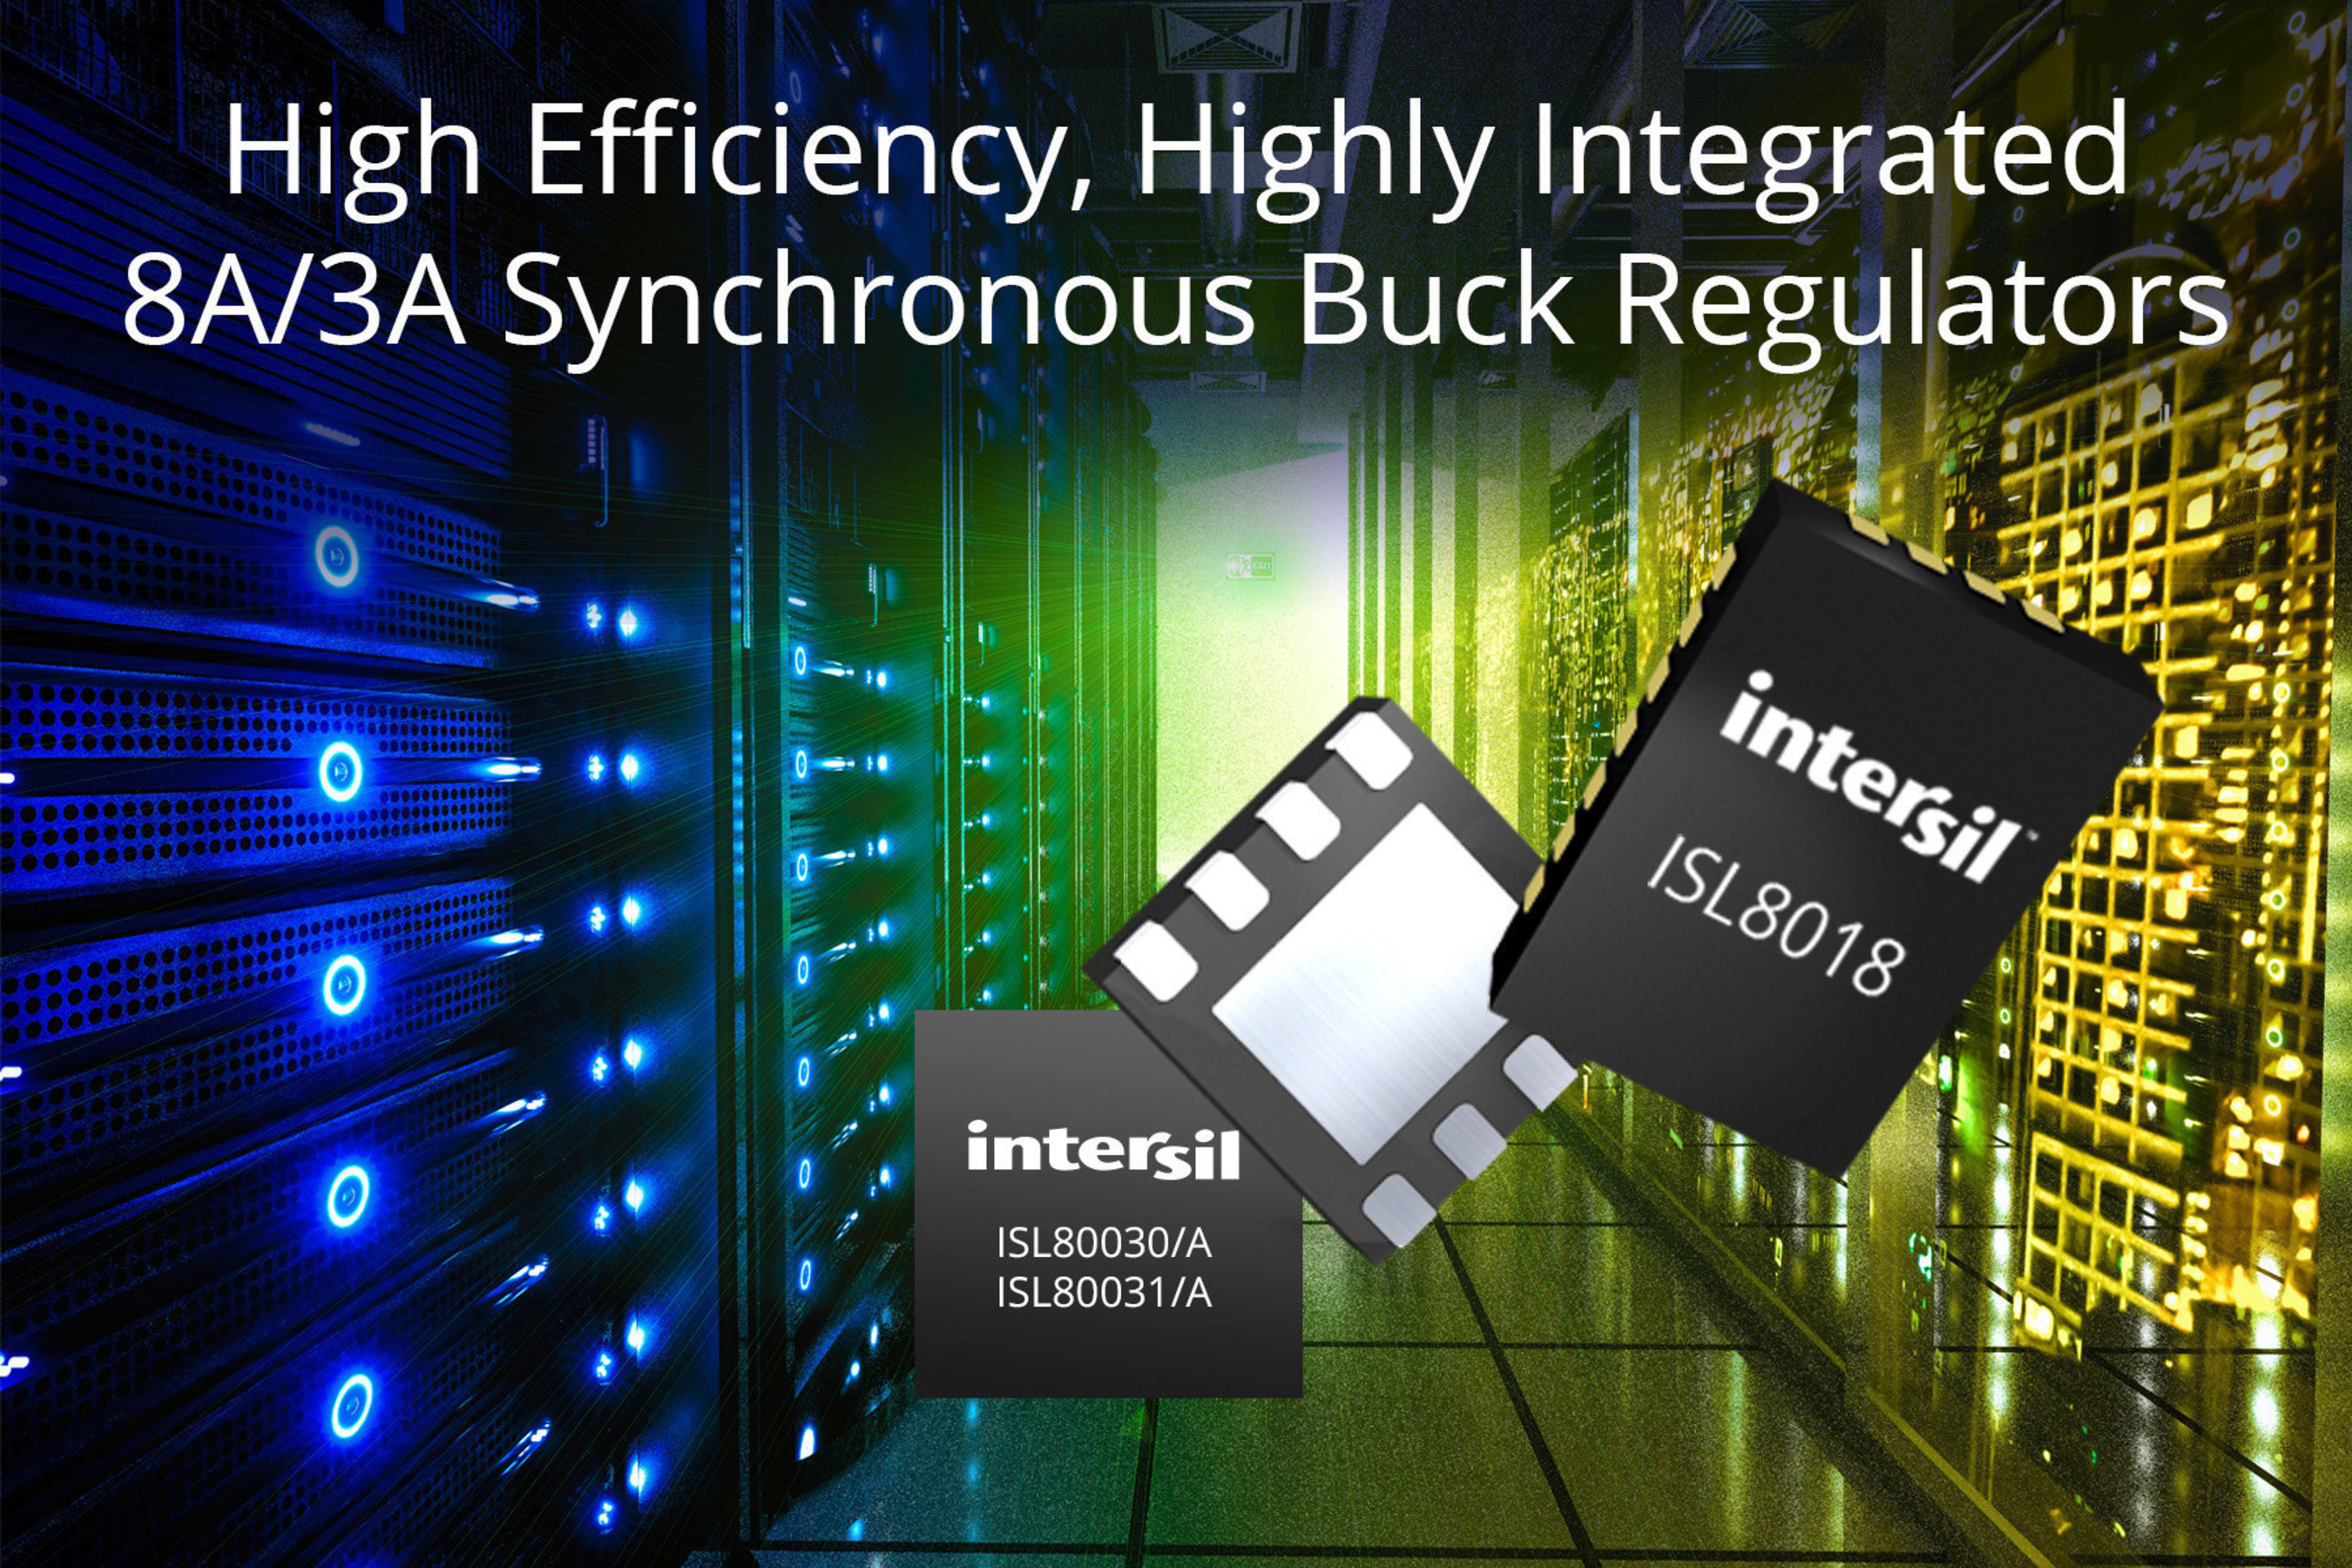 Intersil Introduces High Efficiency, Highly Integrated 8A and 3A Synchronous Buck Regulators